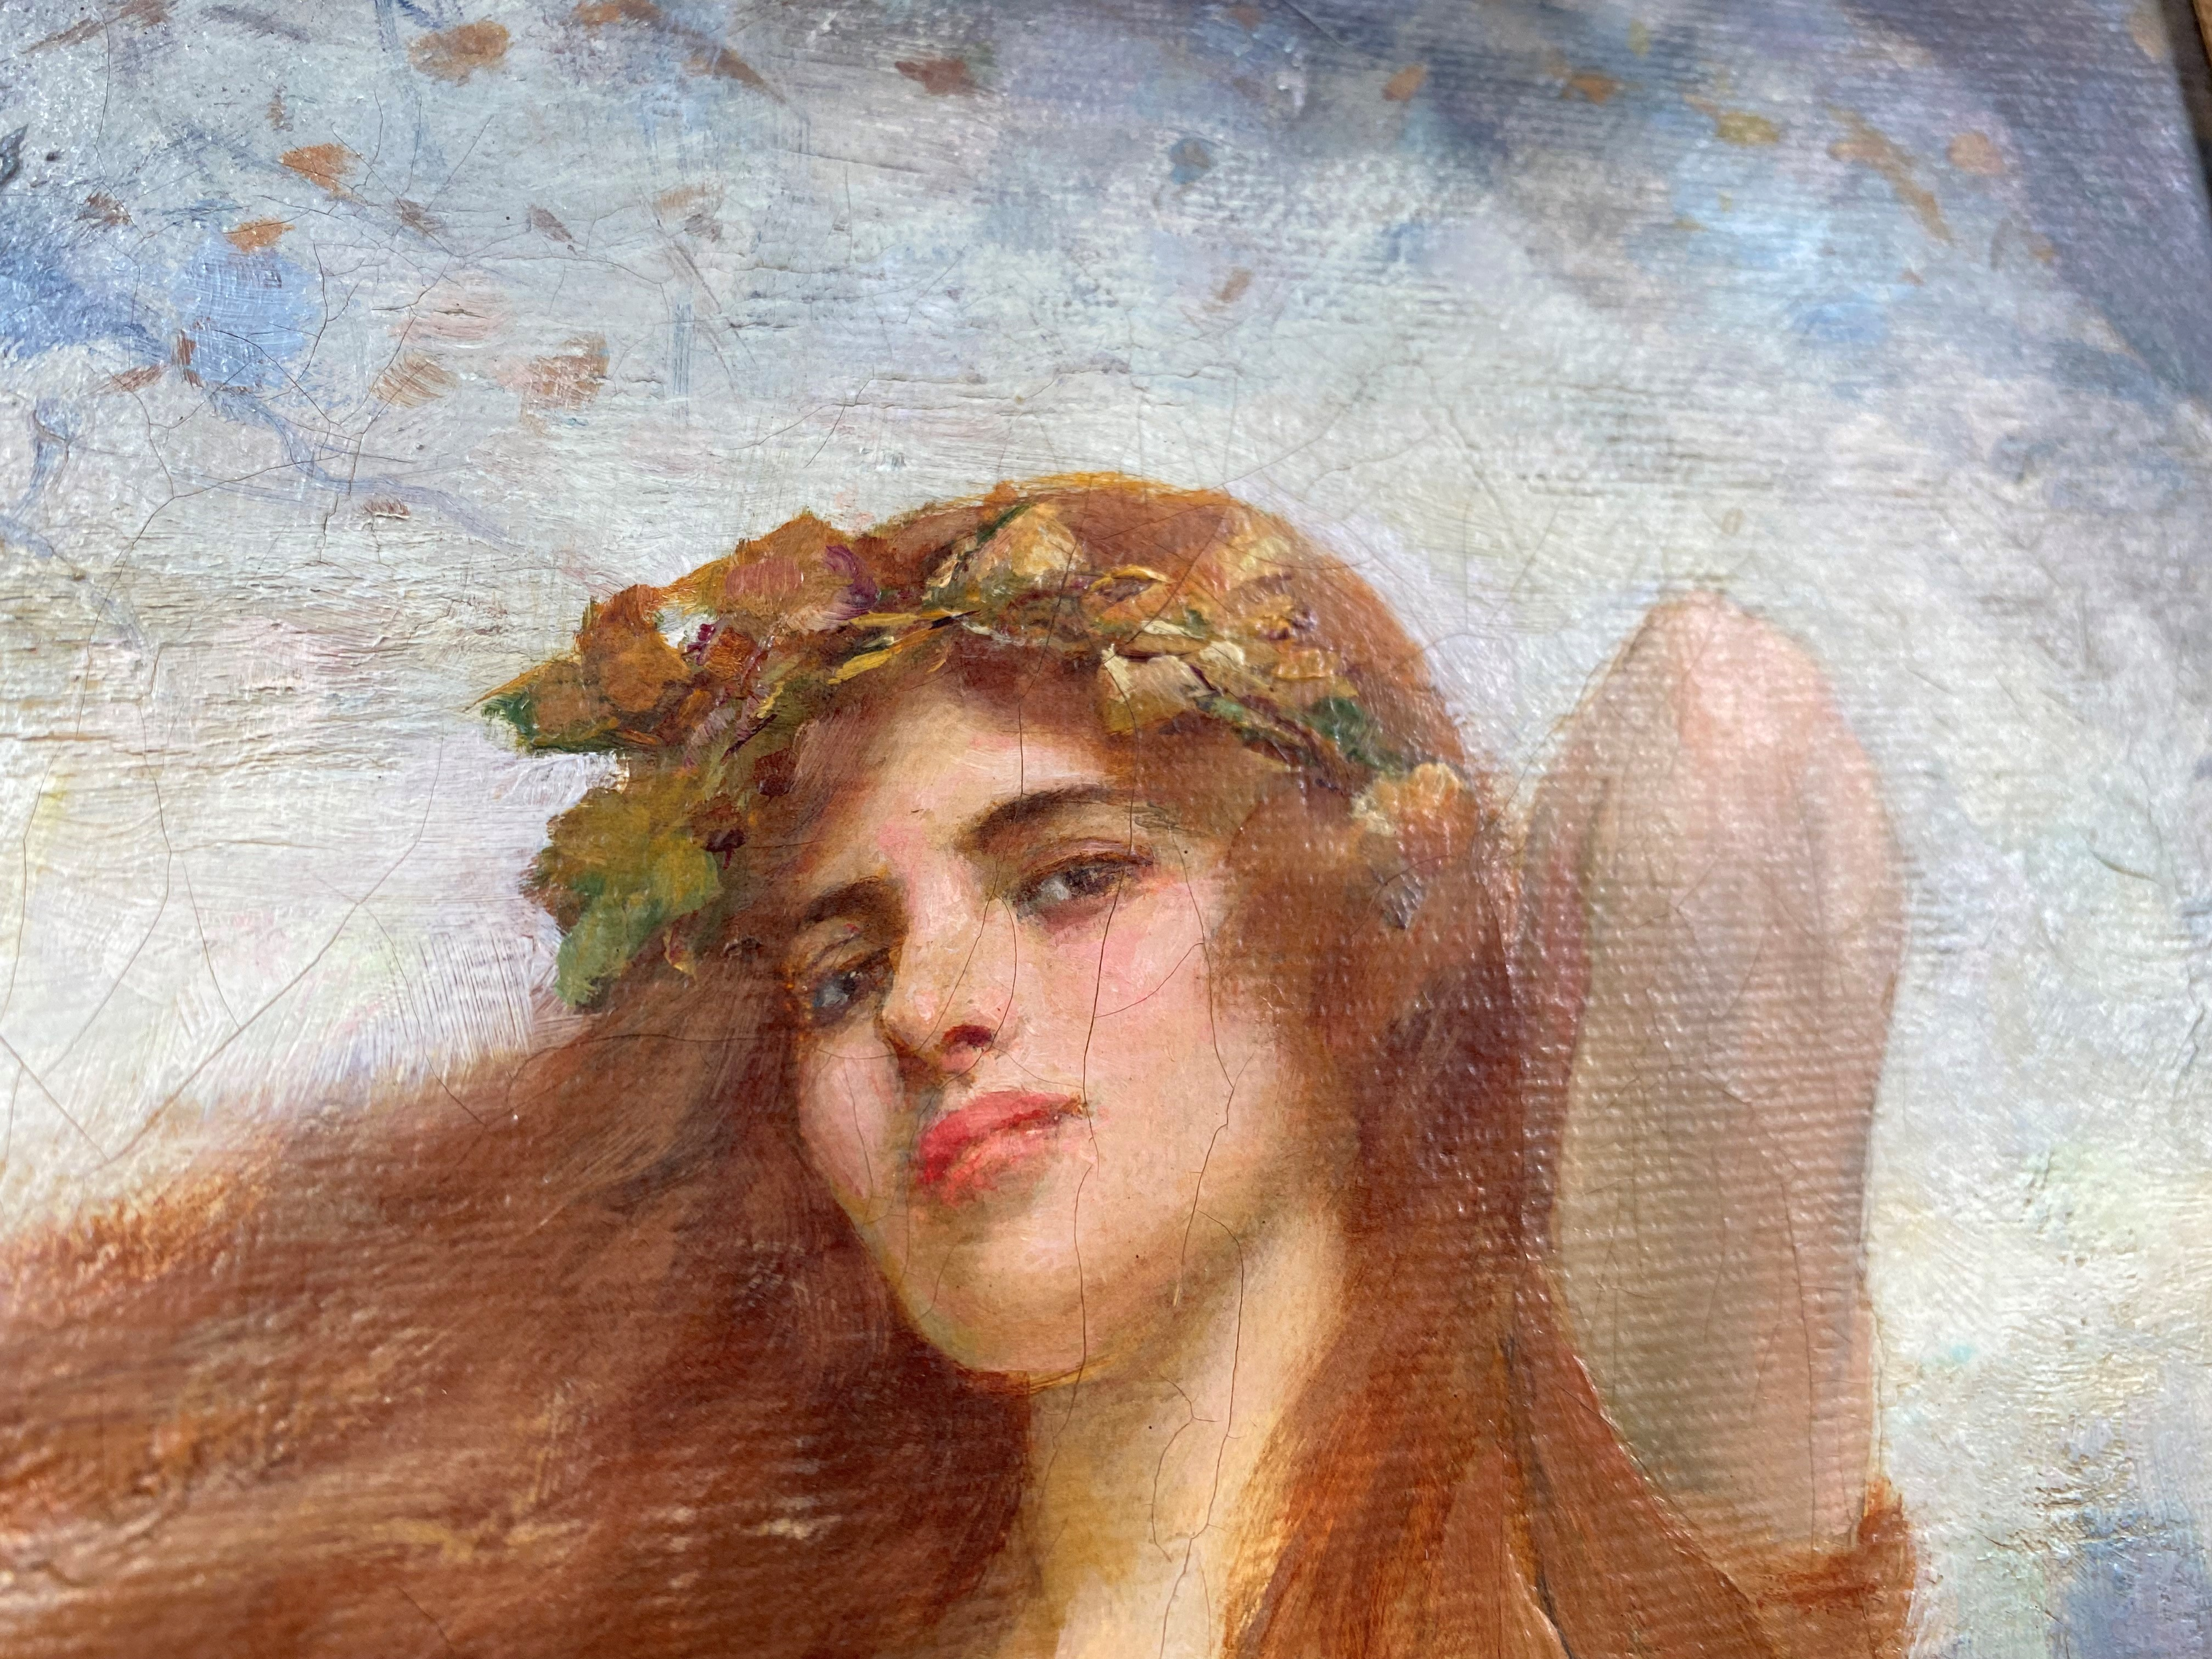 William Breakspeare (British 19th Century): oil on canvas, pre-Raphaelite portrayal of a young woman - Image 4 of 7